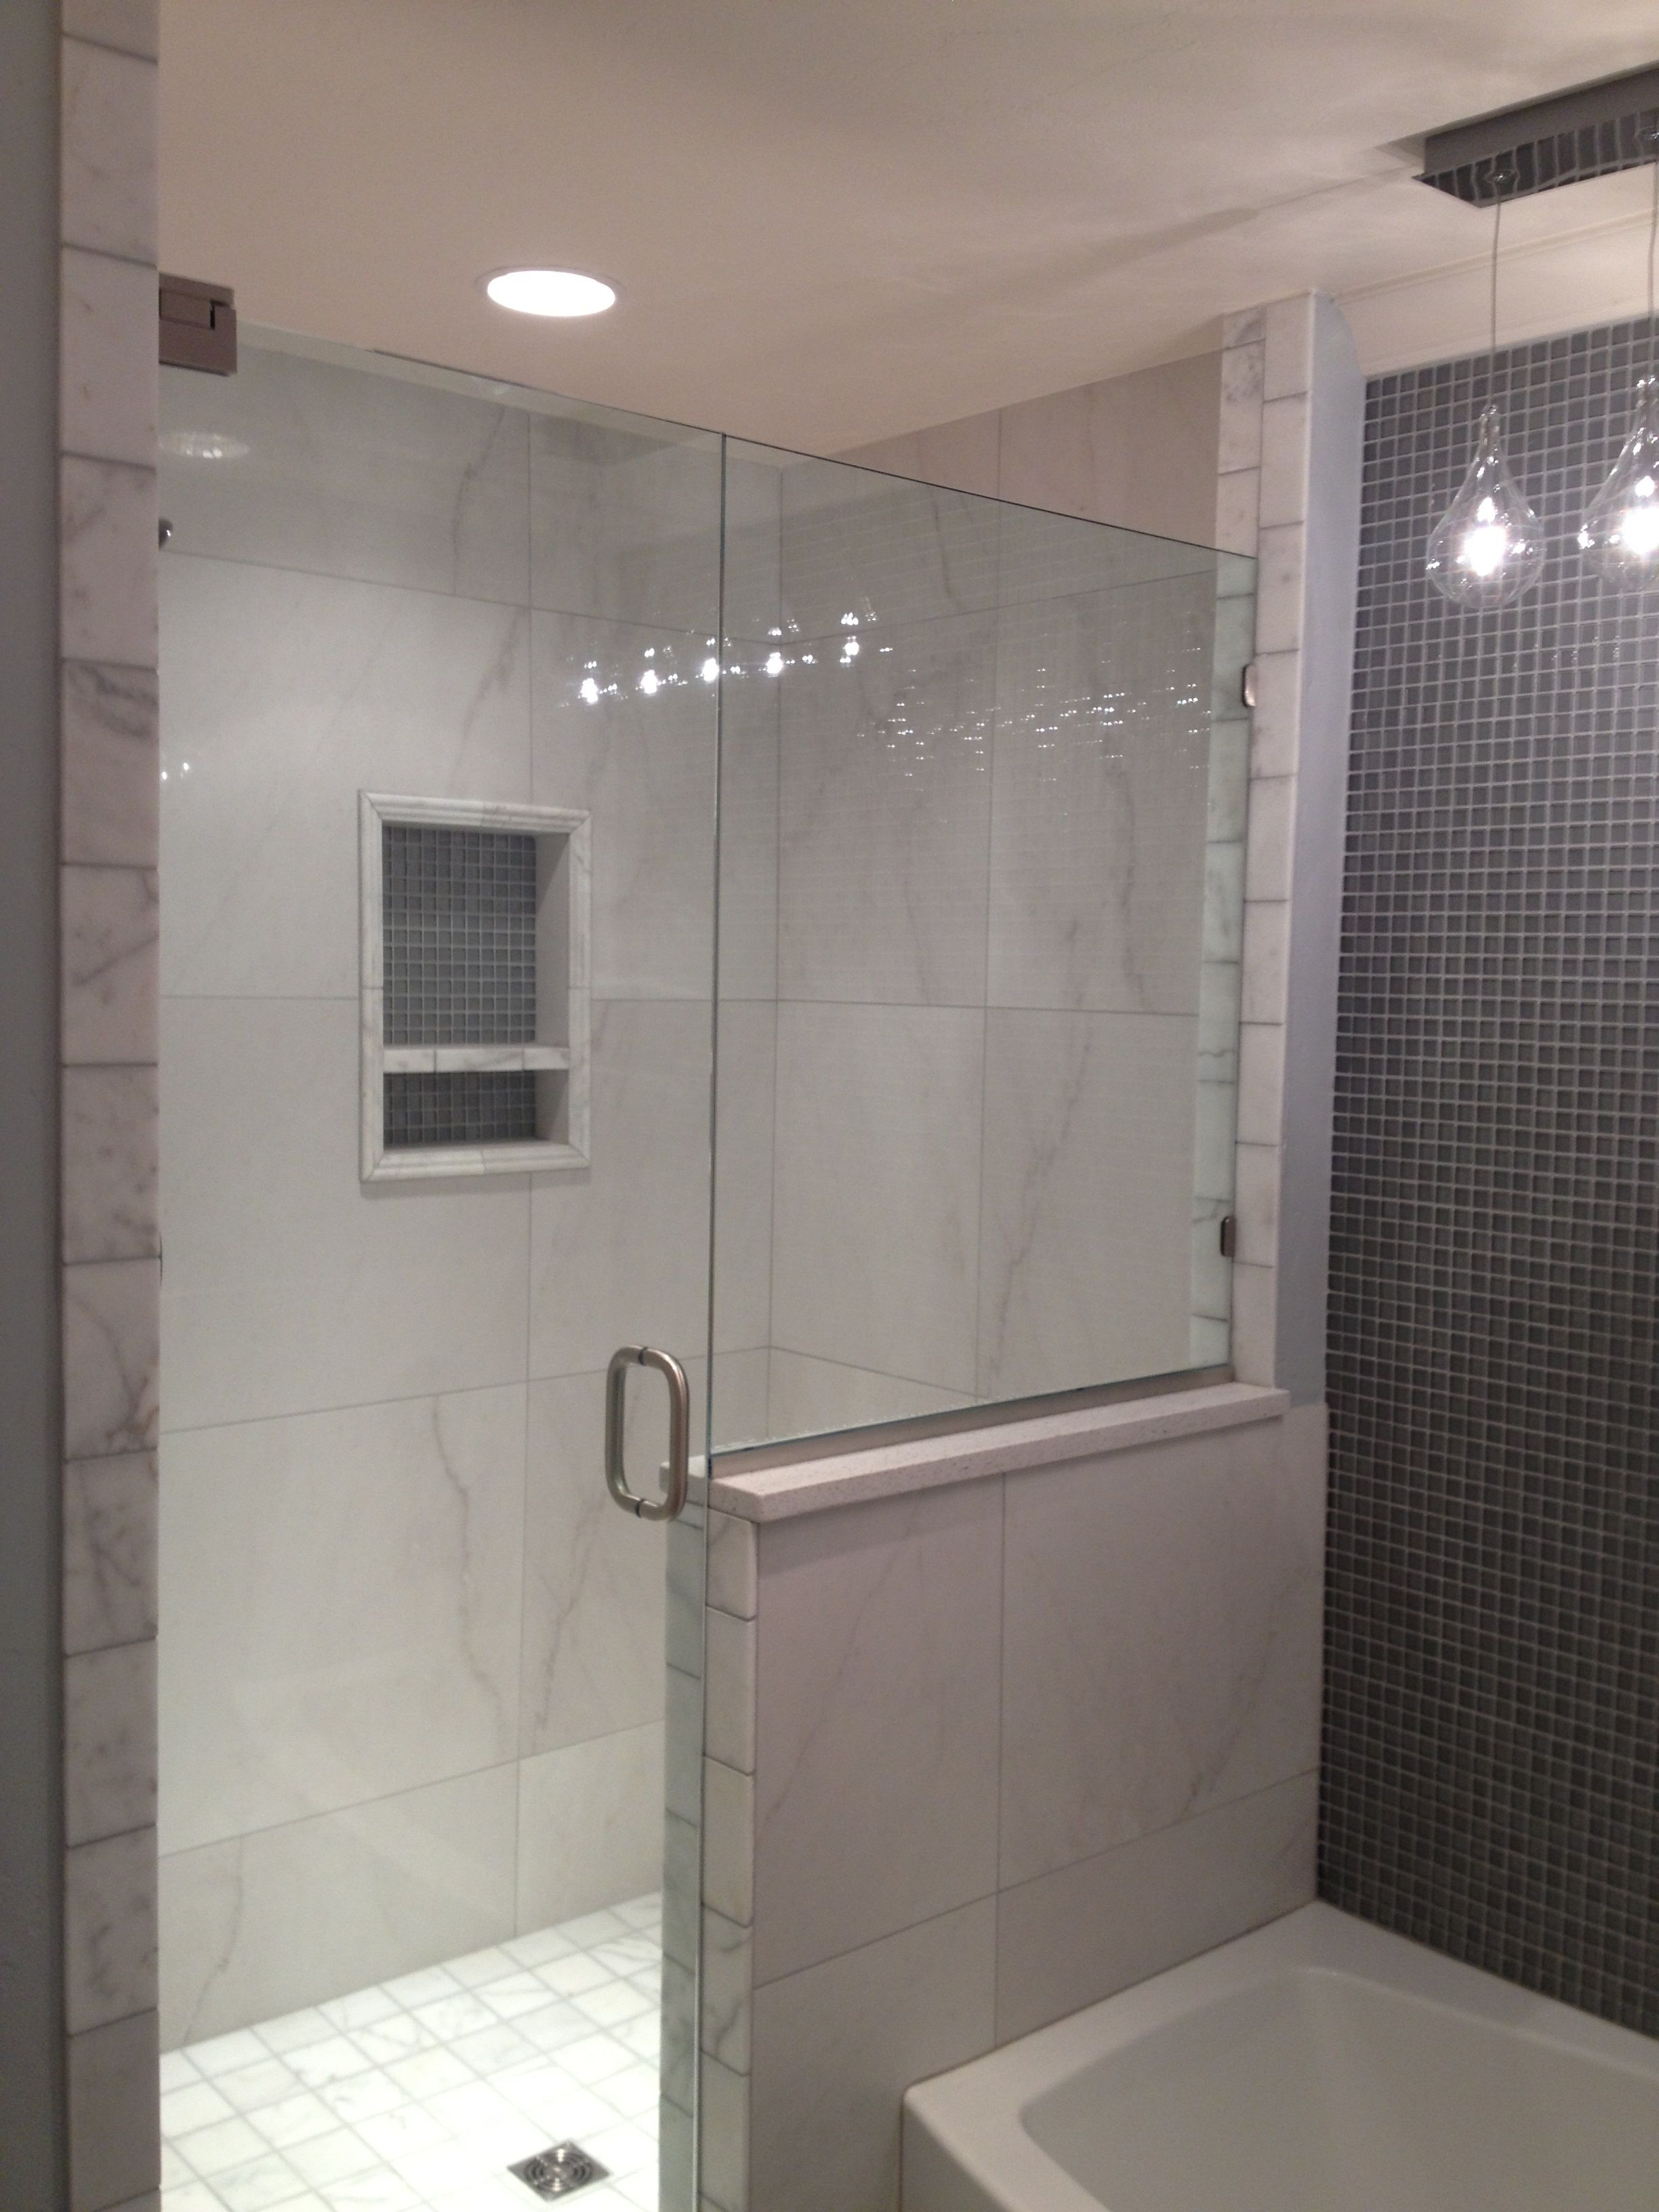 Bathroom Remodeling Vero Beach Fl very clean with accent glass on niche and tub wall define this